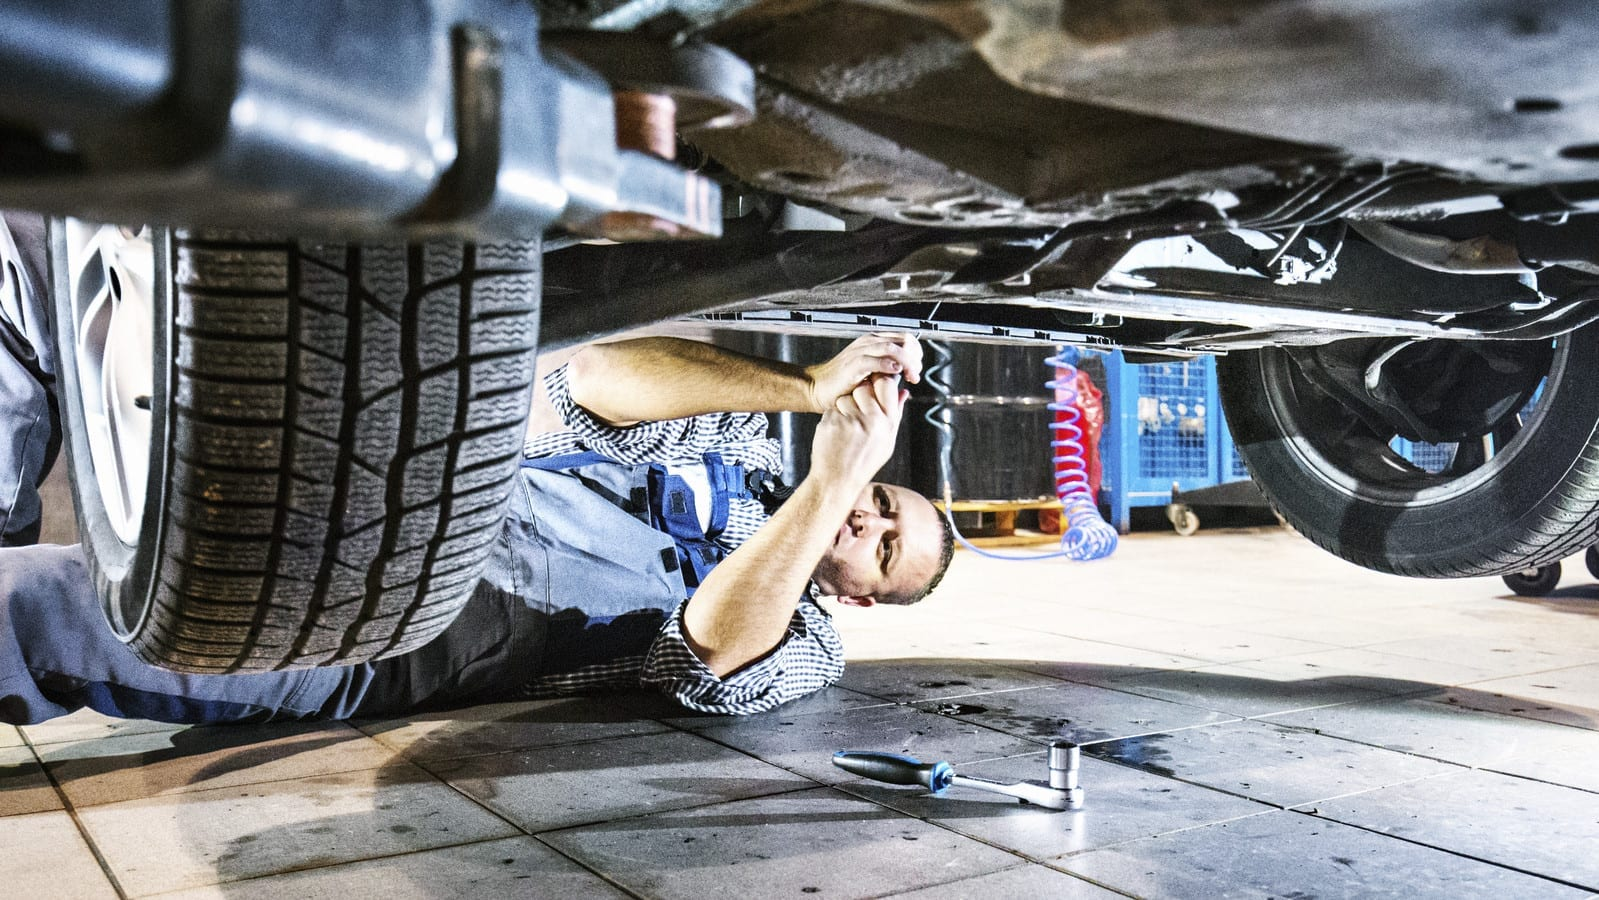 Mechanic Working Underneath A Vehicle Stock Photo